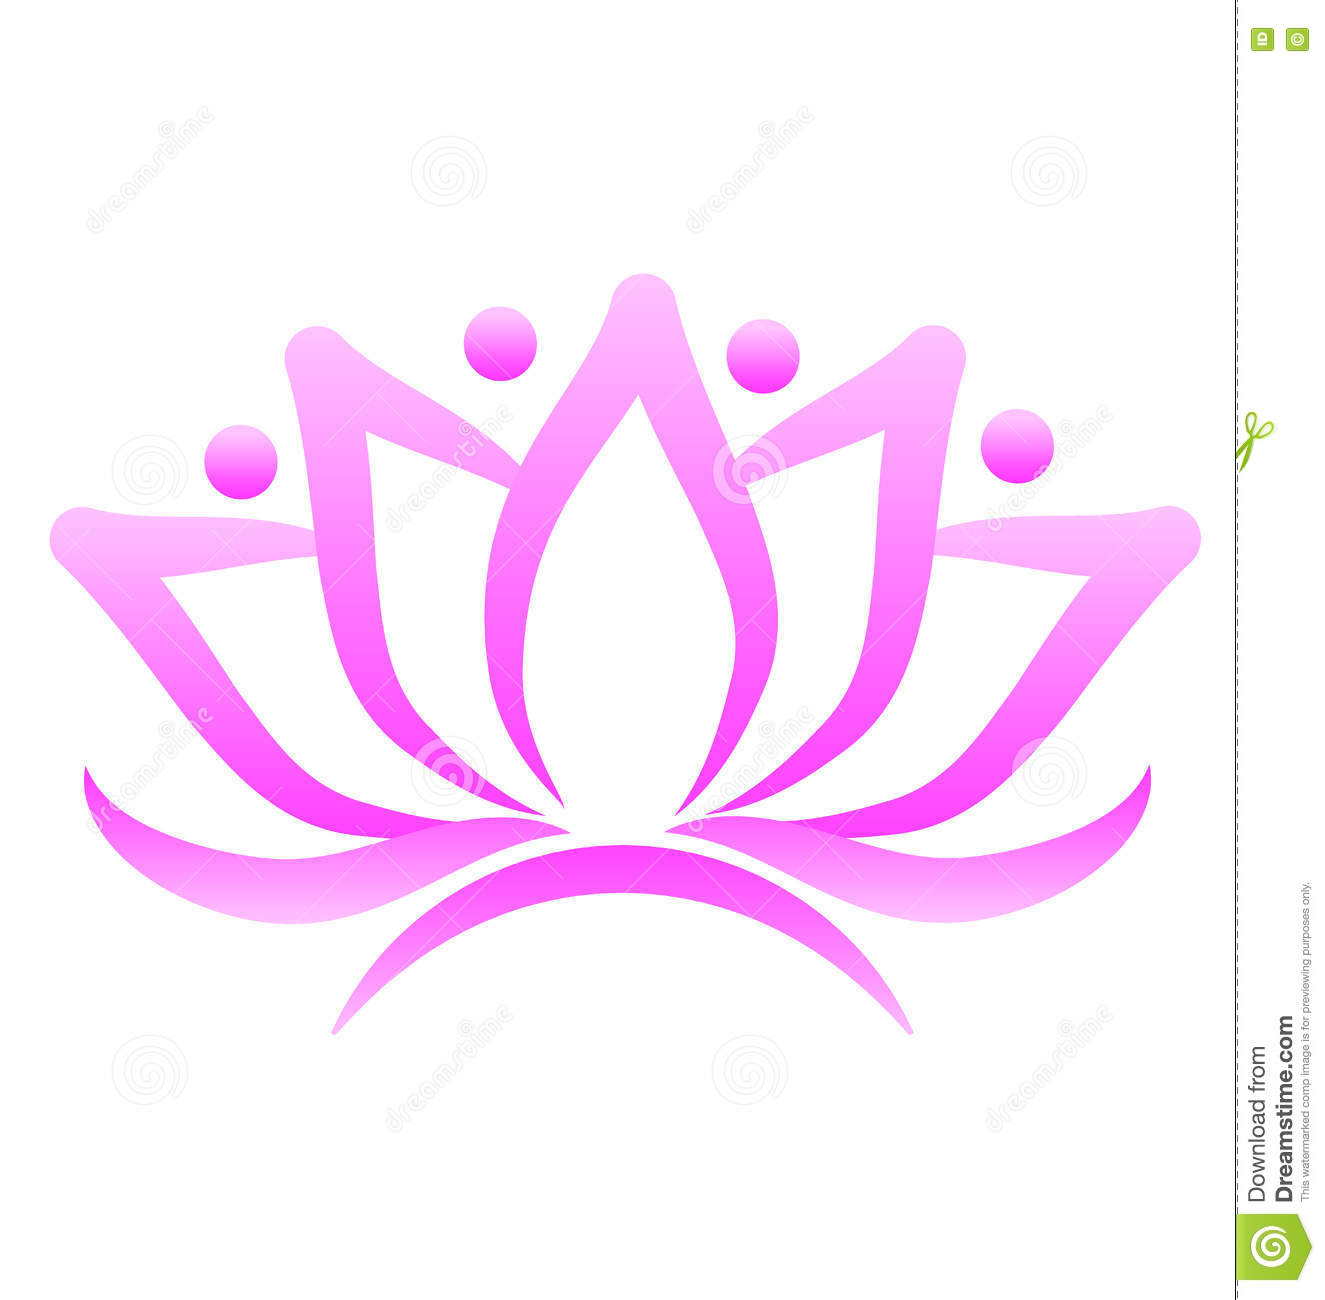 Conception Graphique De Vecteur Carte Visite Professionnelle Fleur Lotus